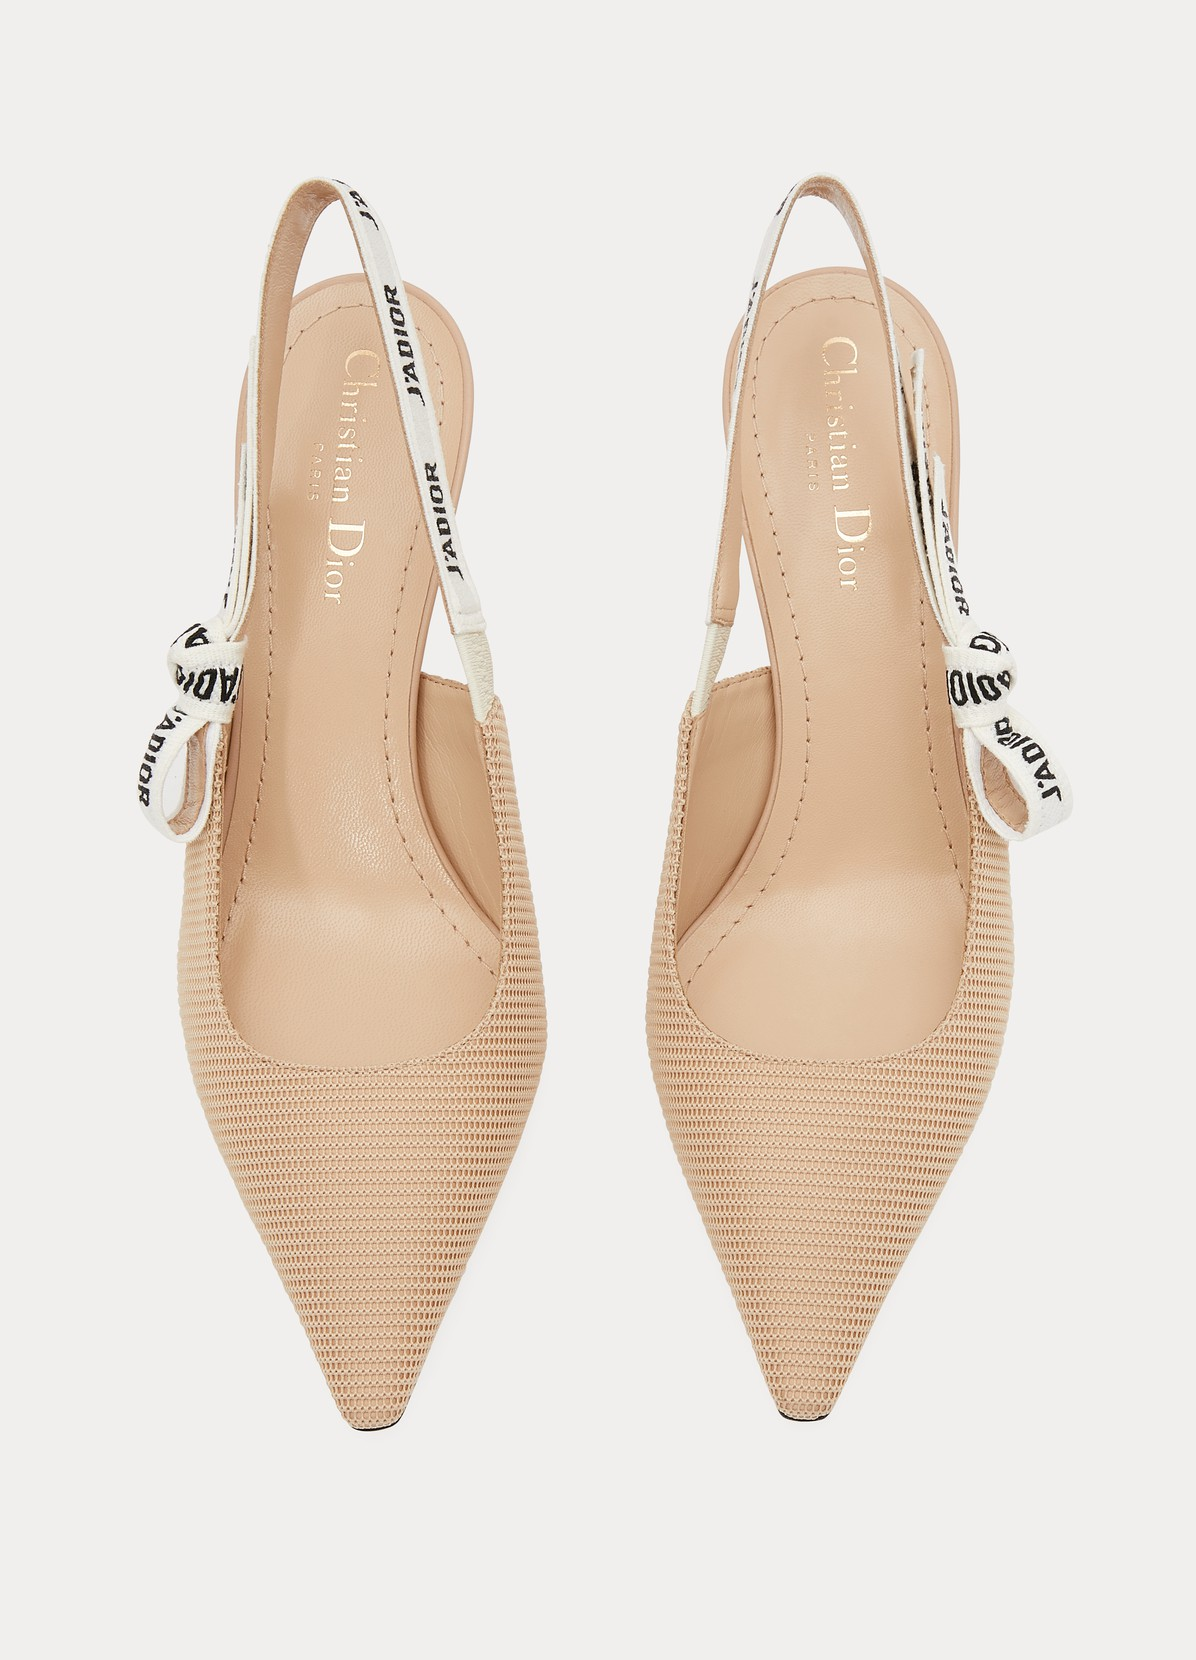 J'adior Dior Pumps – Small Heel